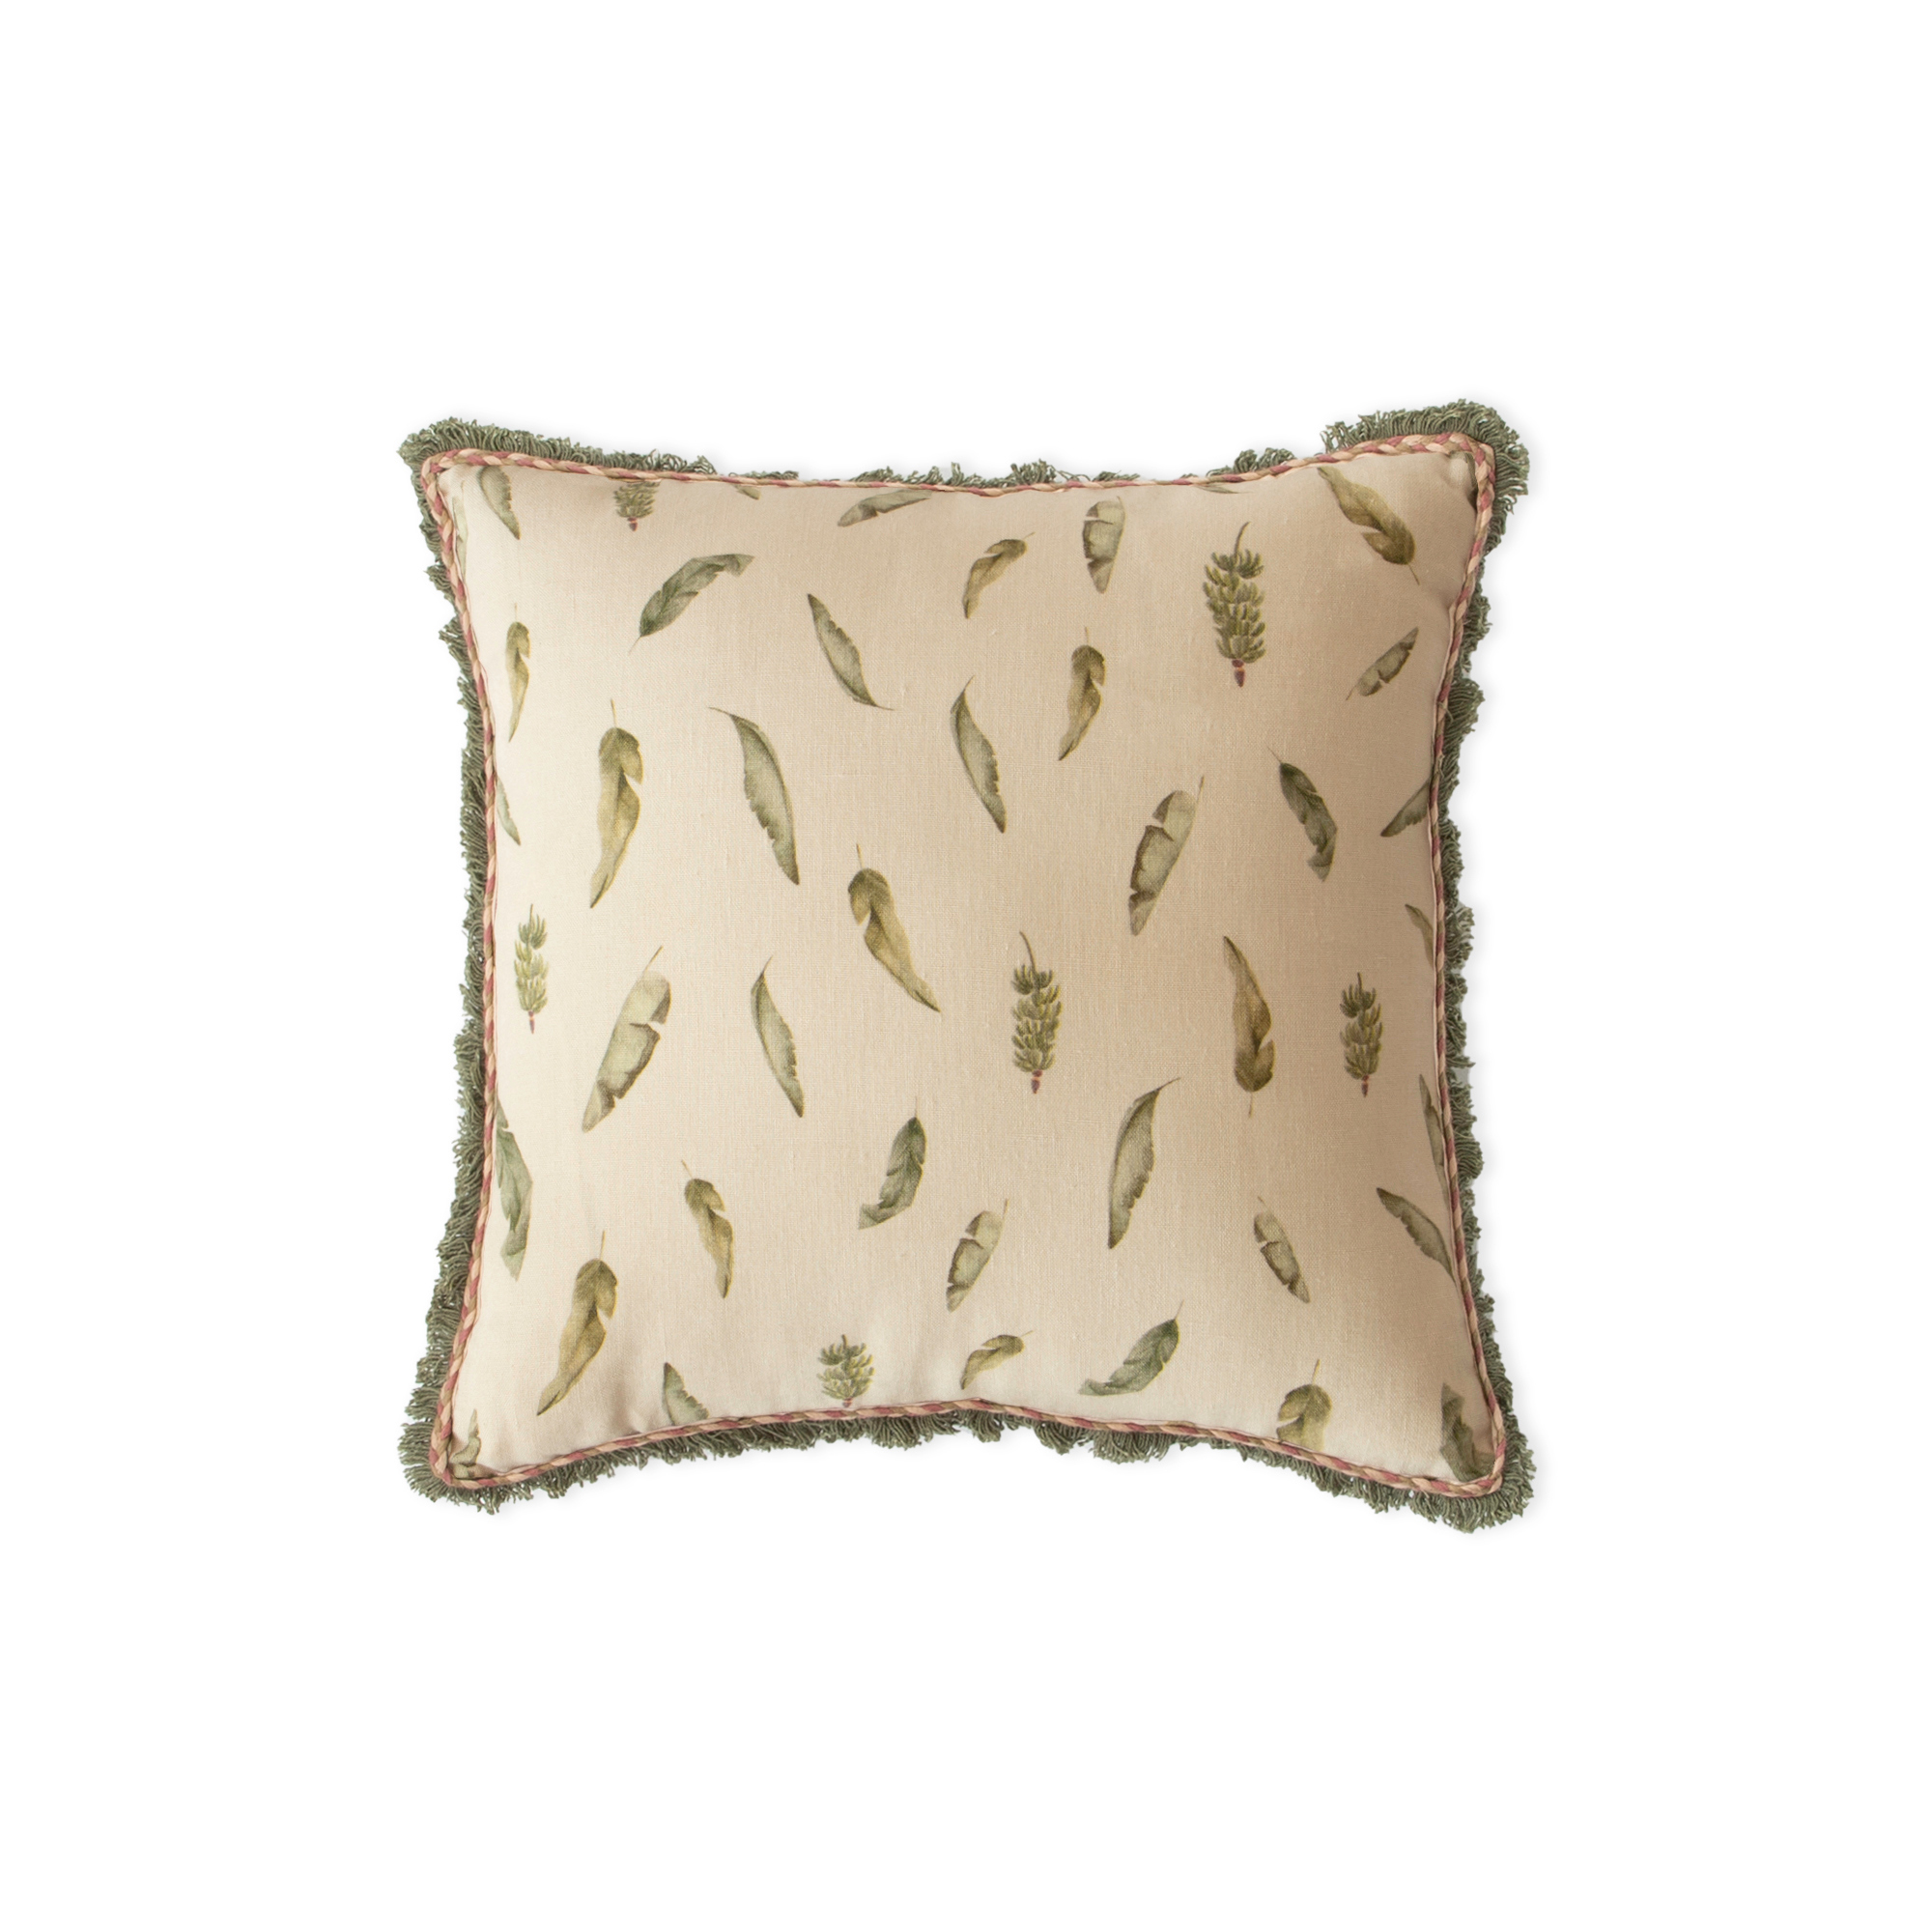 Banana Fruit and Leaves Cushion Cover